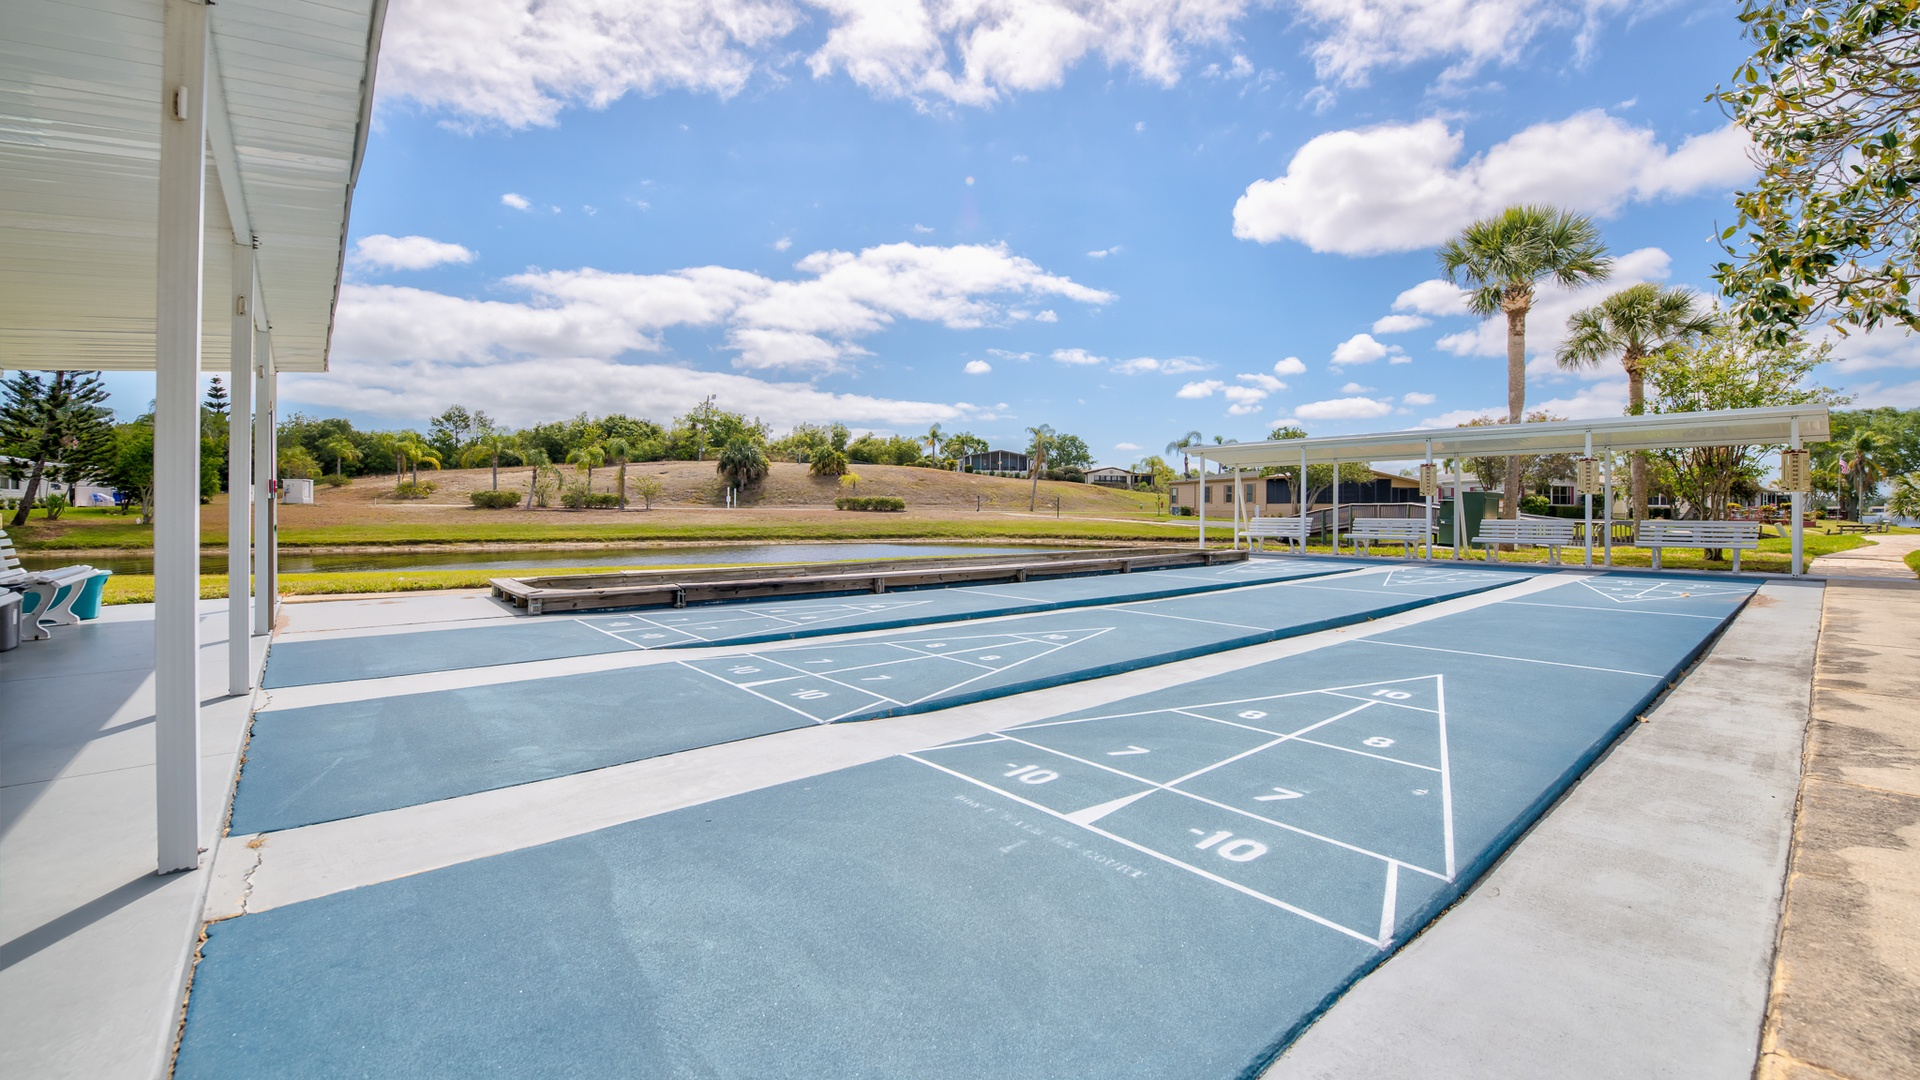 Park Place 55+ Manufactured Homes Community Shuffleboard Courts in Sebastian, FL